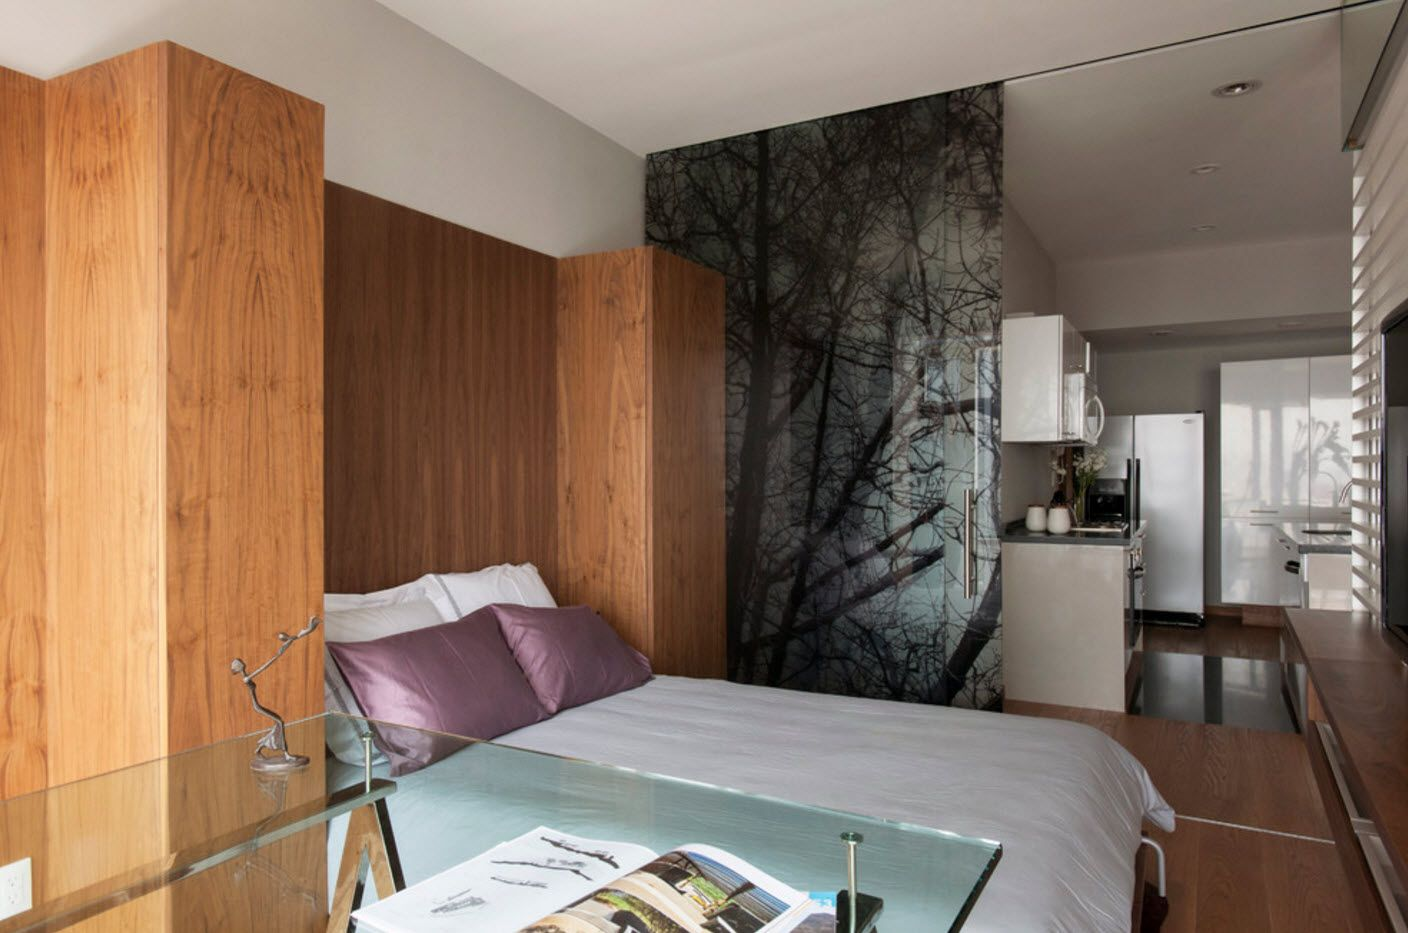 Nice wooden surfaces in the bedroom